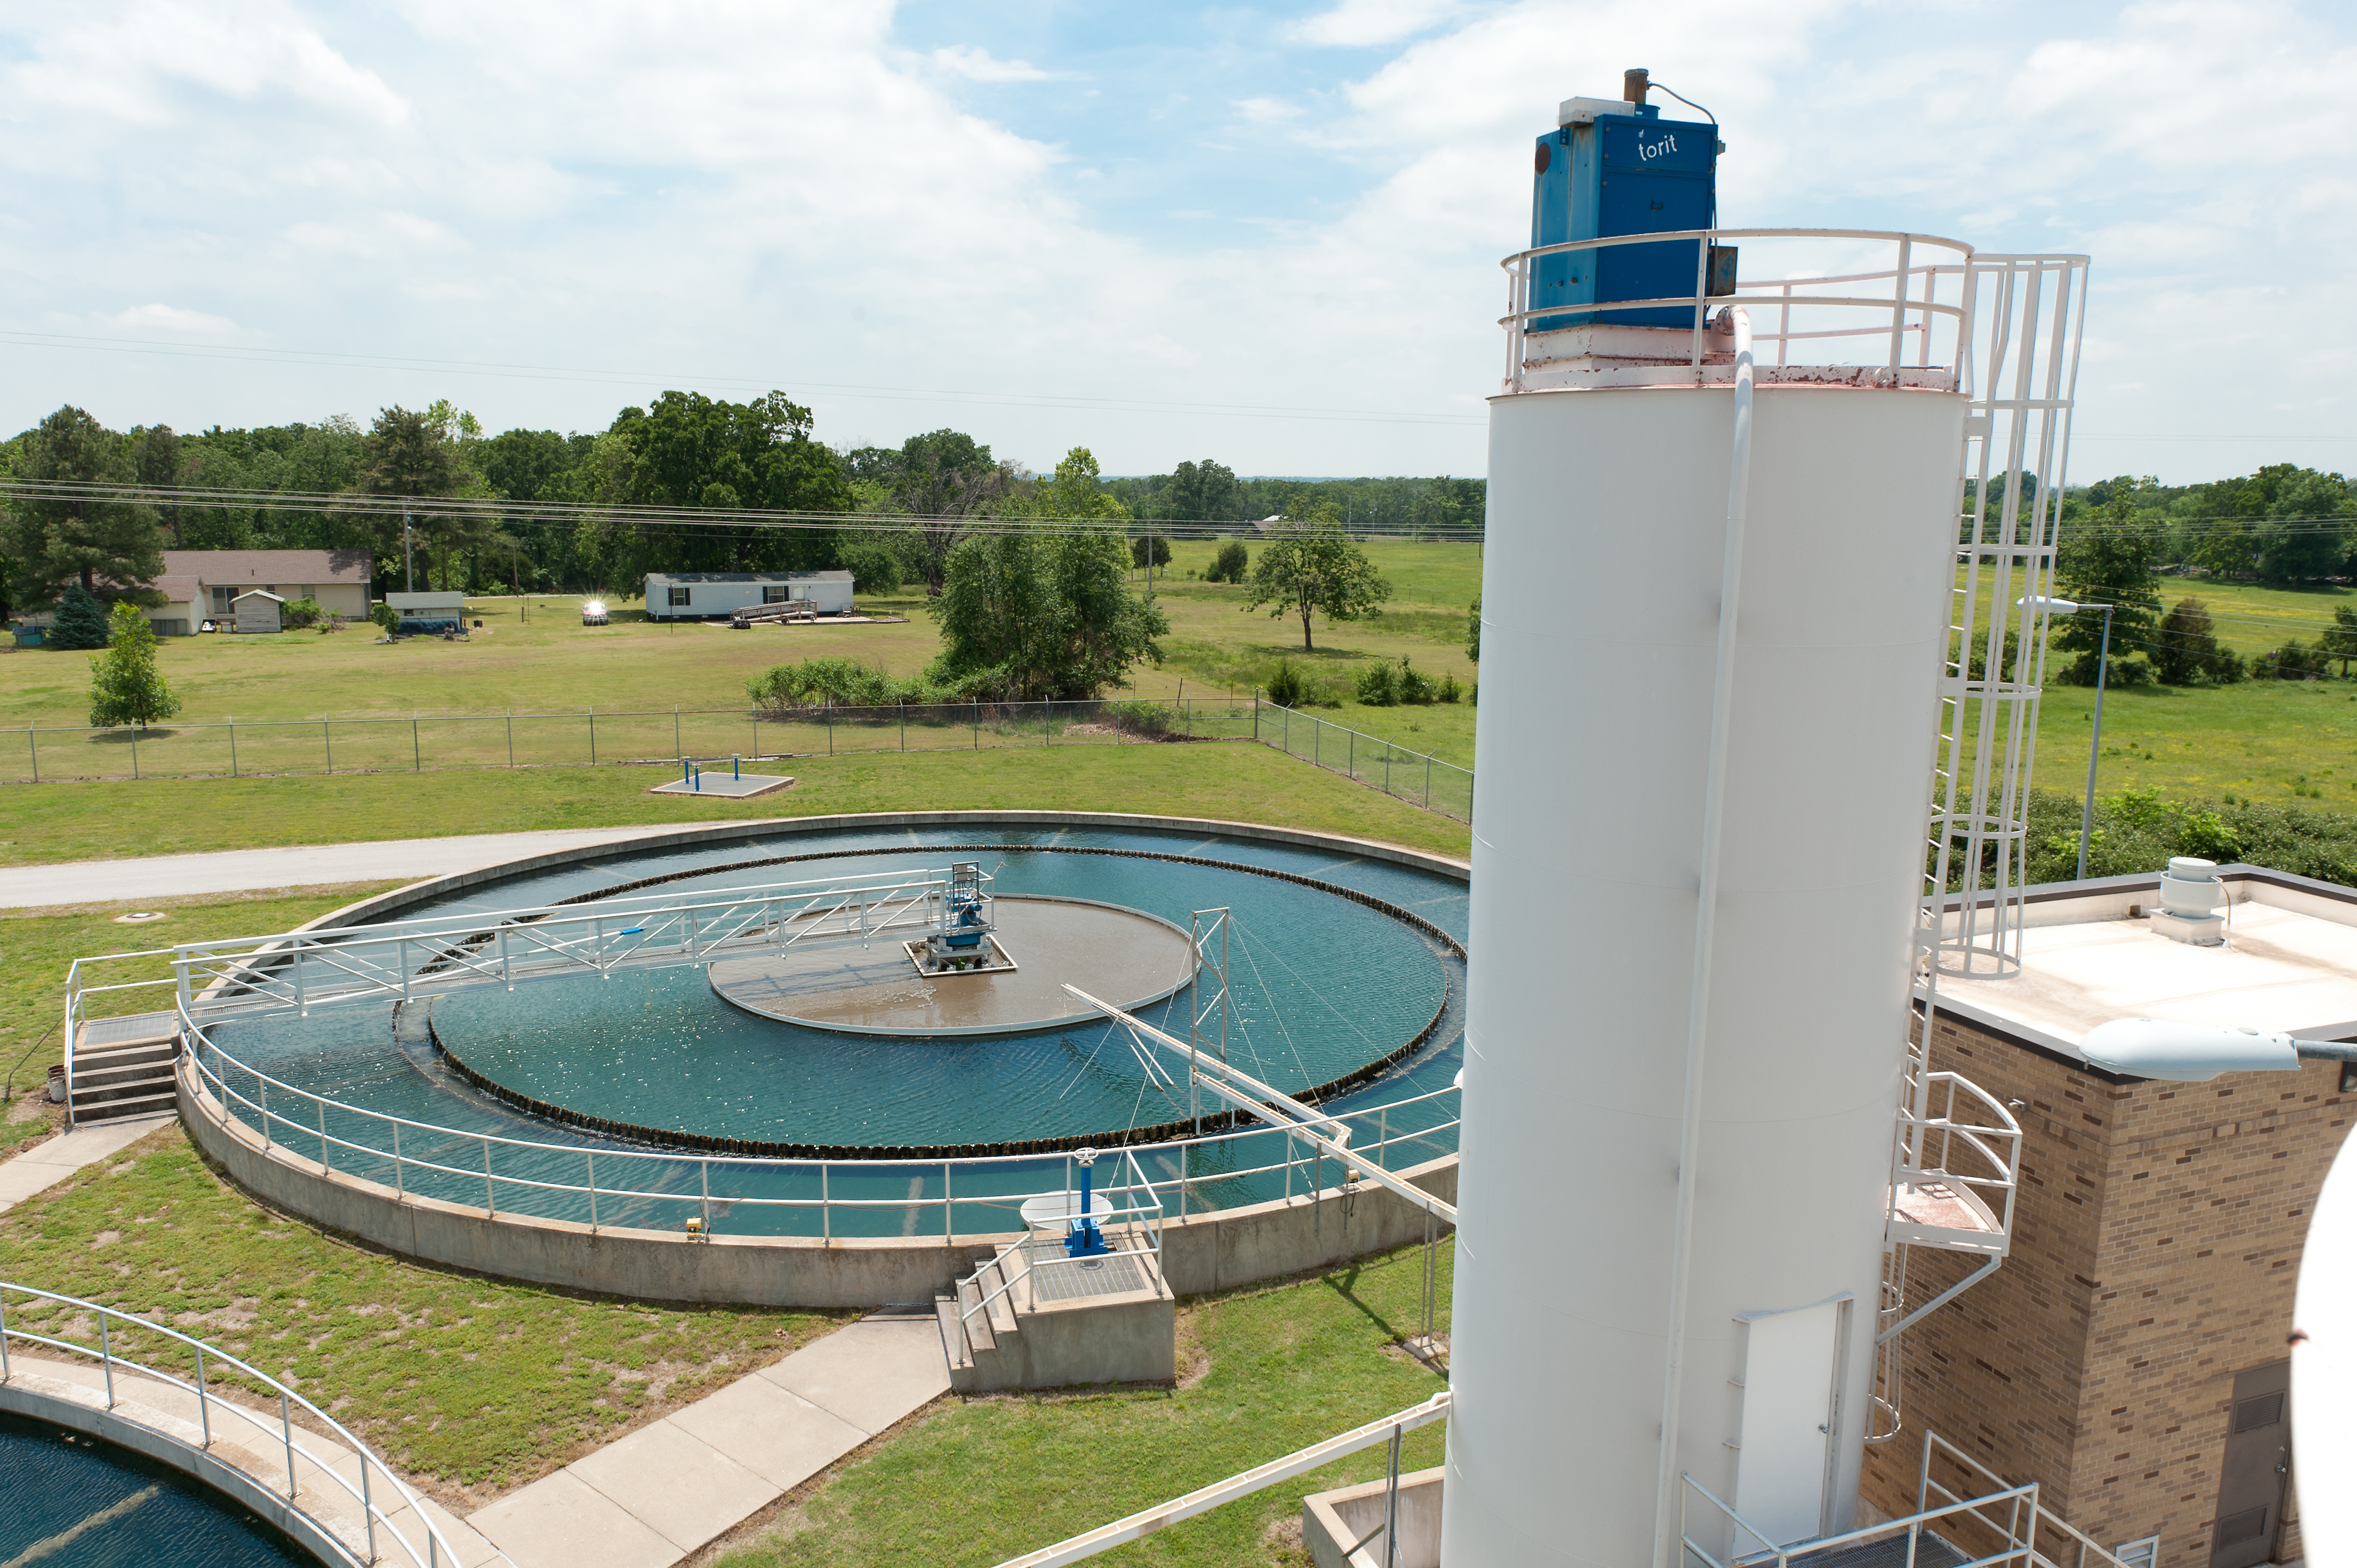 City of Siloam Springs Water Treatment 57